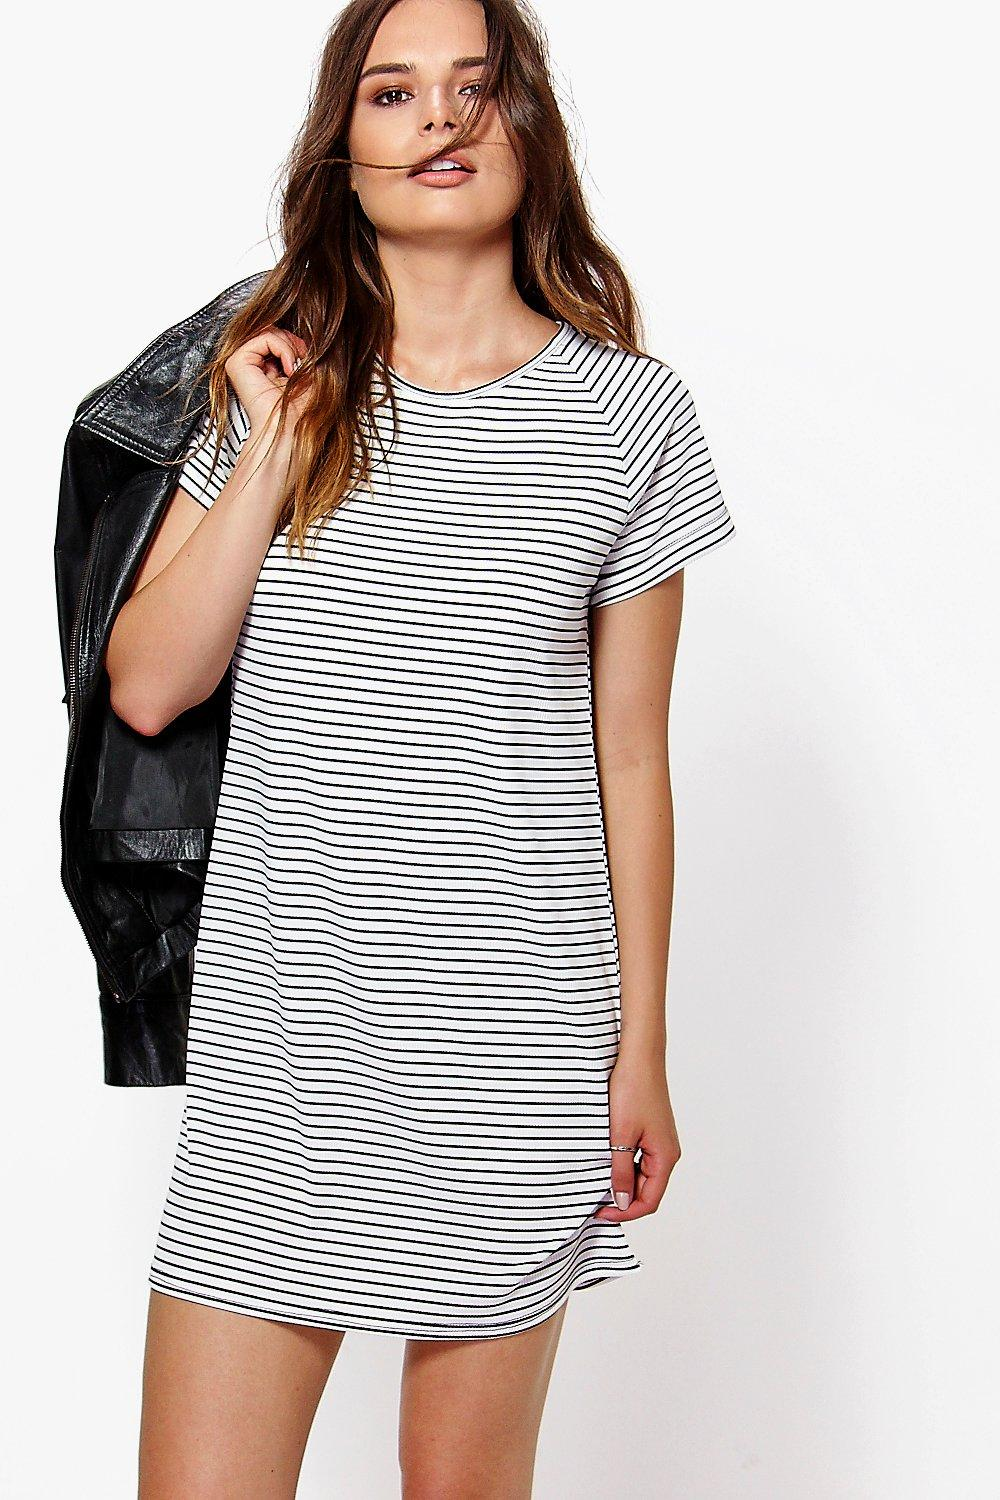 Striped T-Shirt Dresses for Women